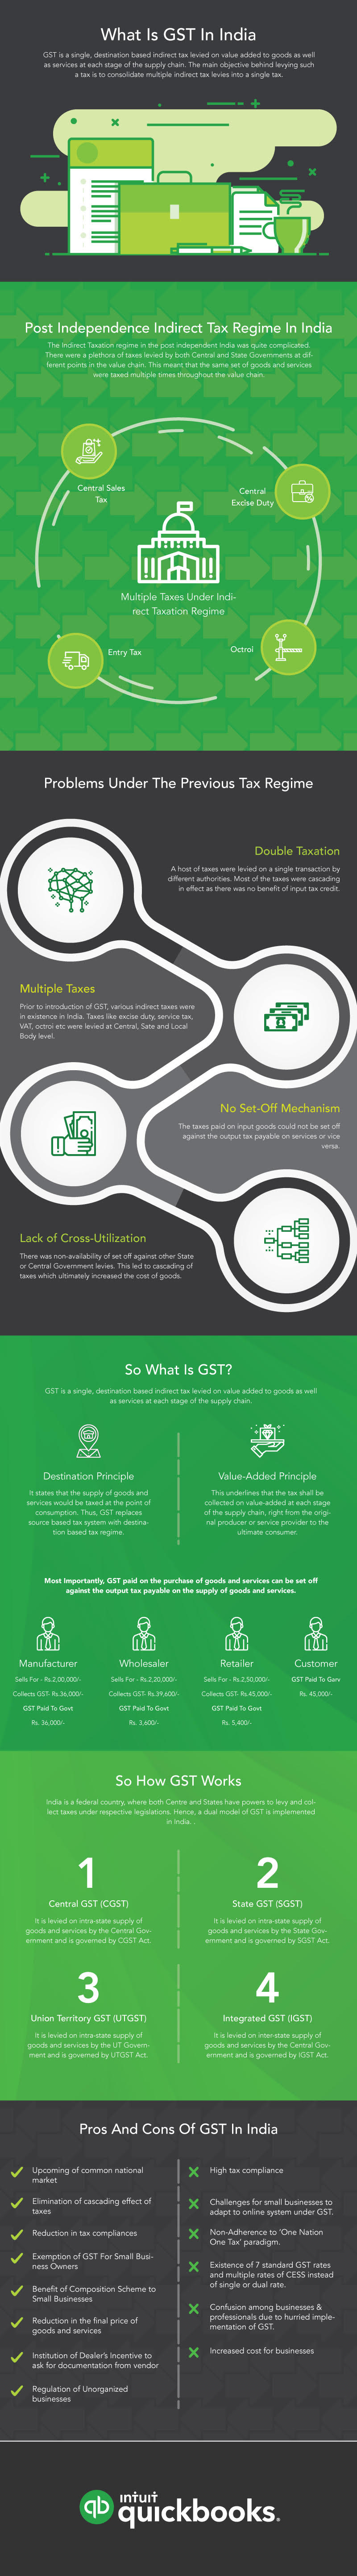 What is GST in India?